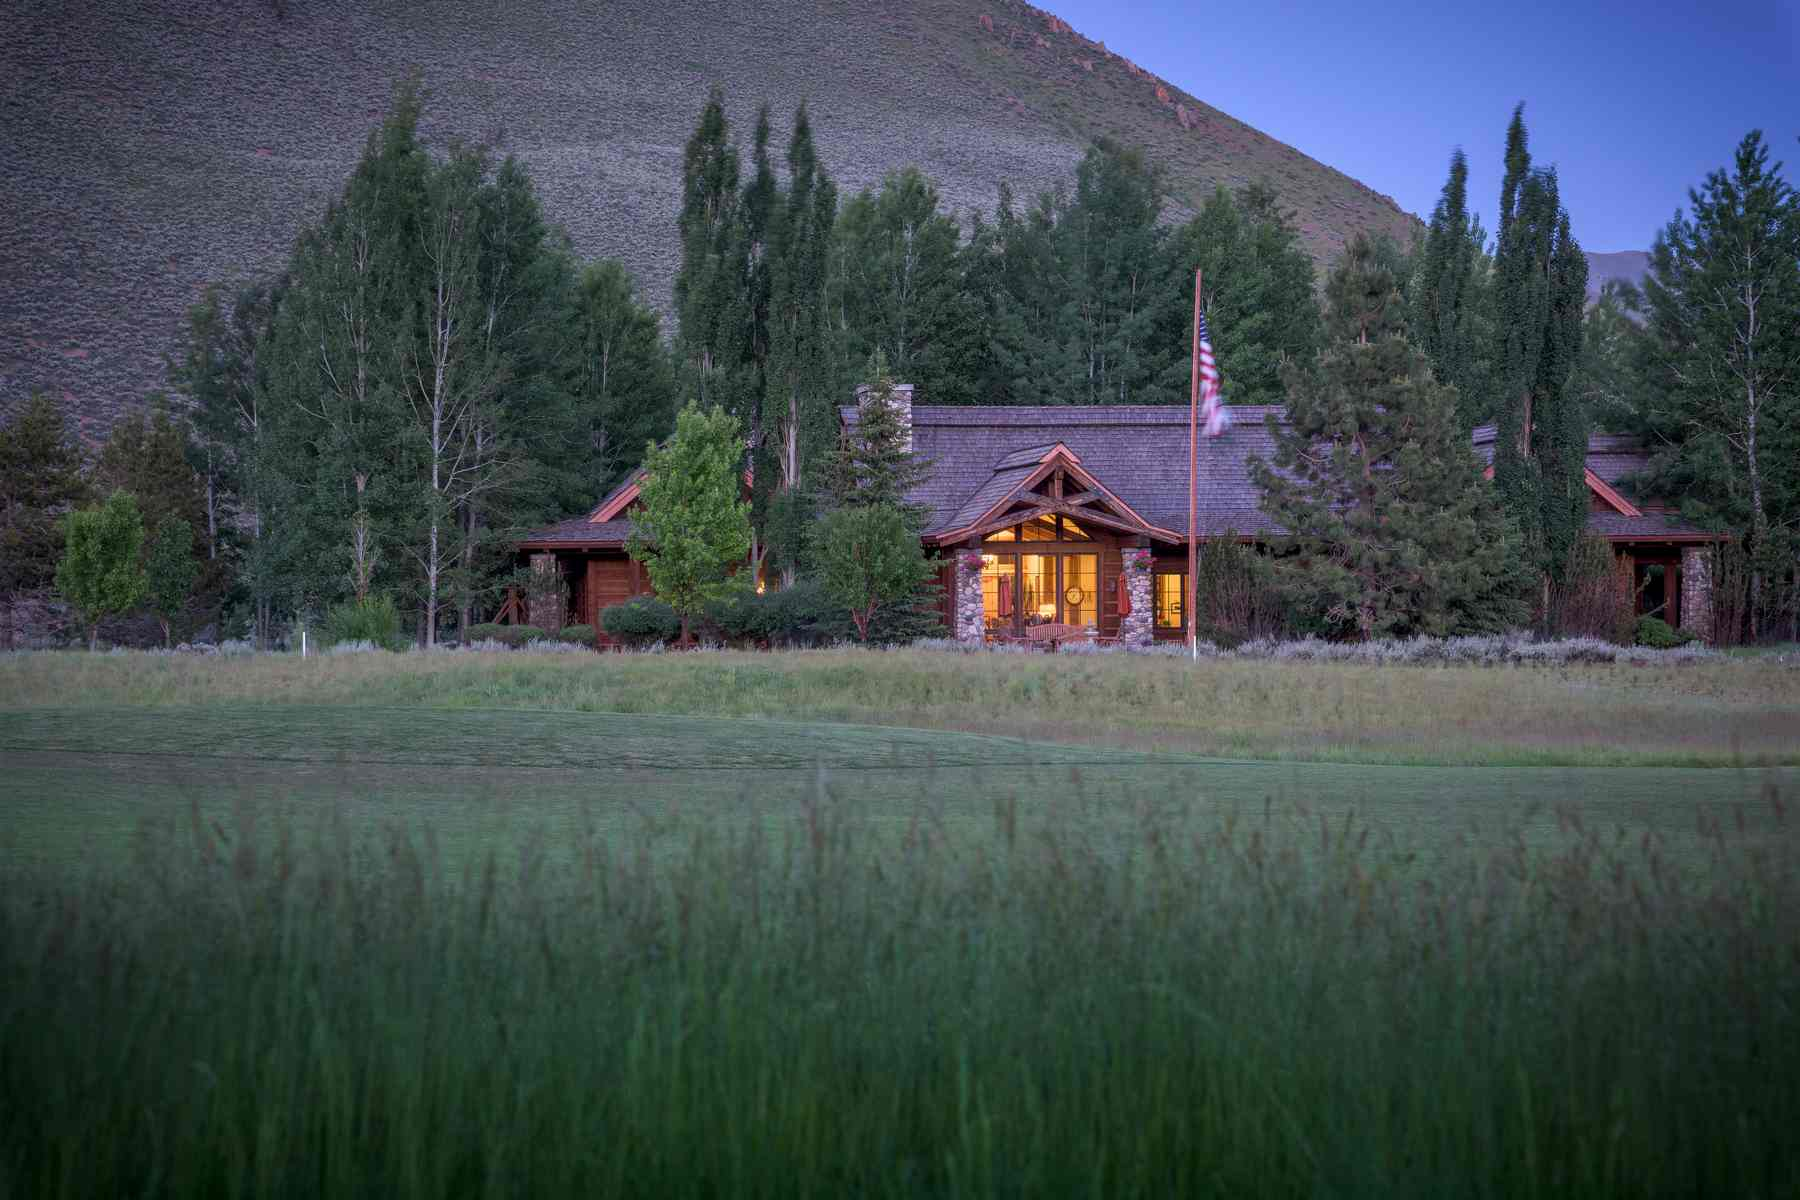 Single Family Homes for Sale at Luxury on Fairway Five 35 Copper Creek Road Hailey, Idaho 83333 United States